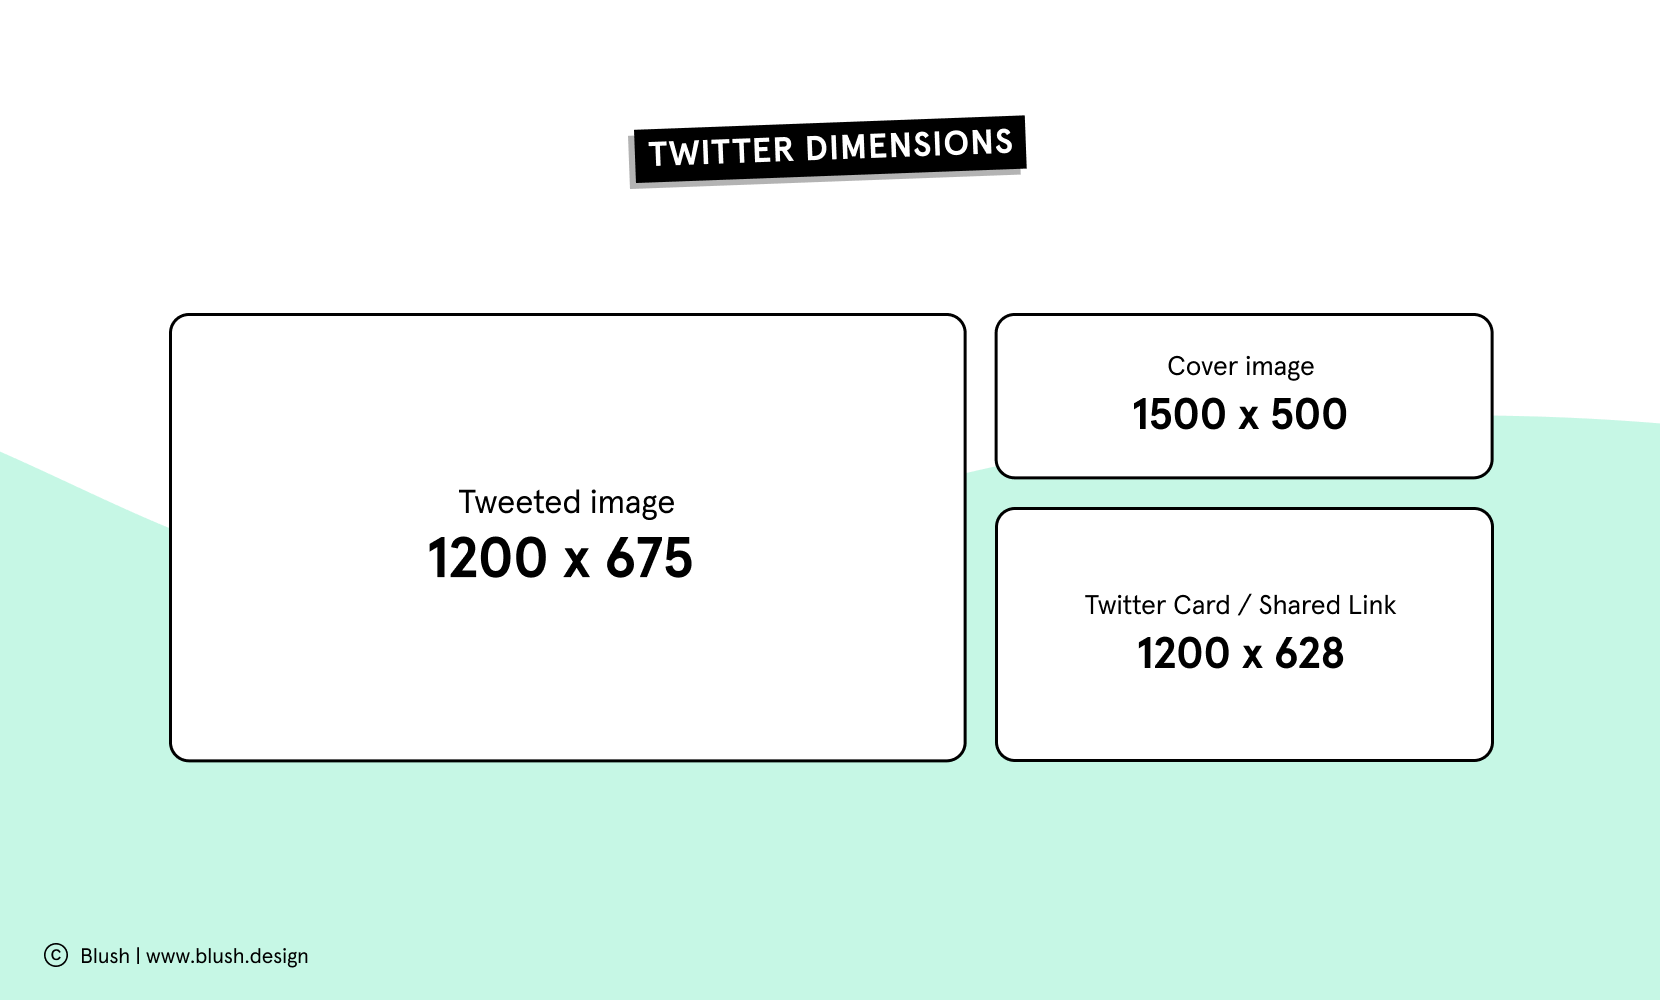 Twitter Dimensions, Tweeted Image 1200 x 675, cover image 1500 x 500, Twitter card 1200 x 628 image